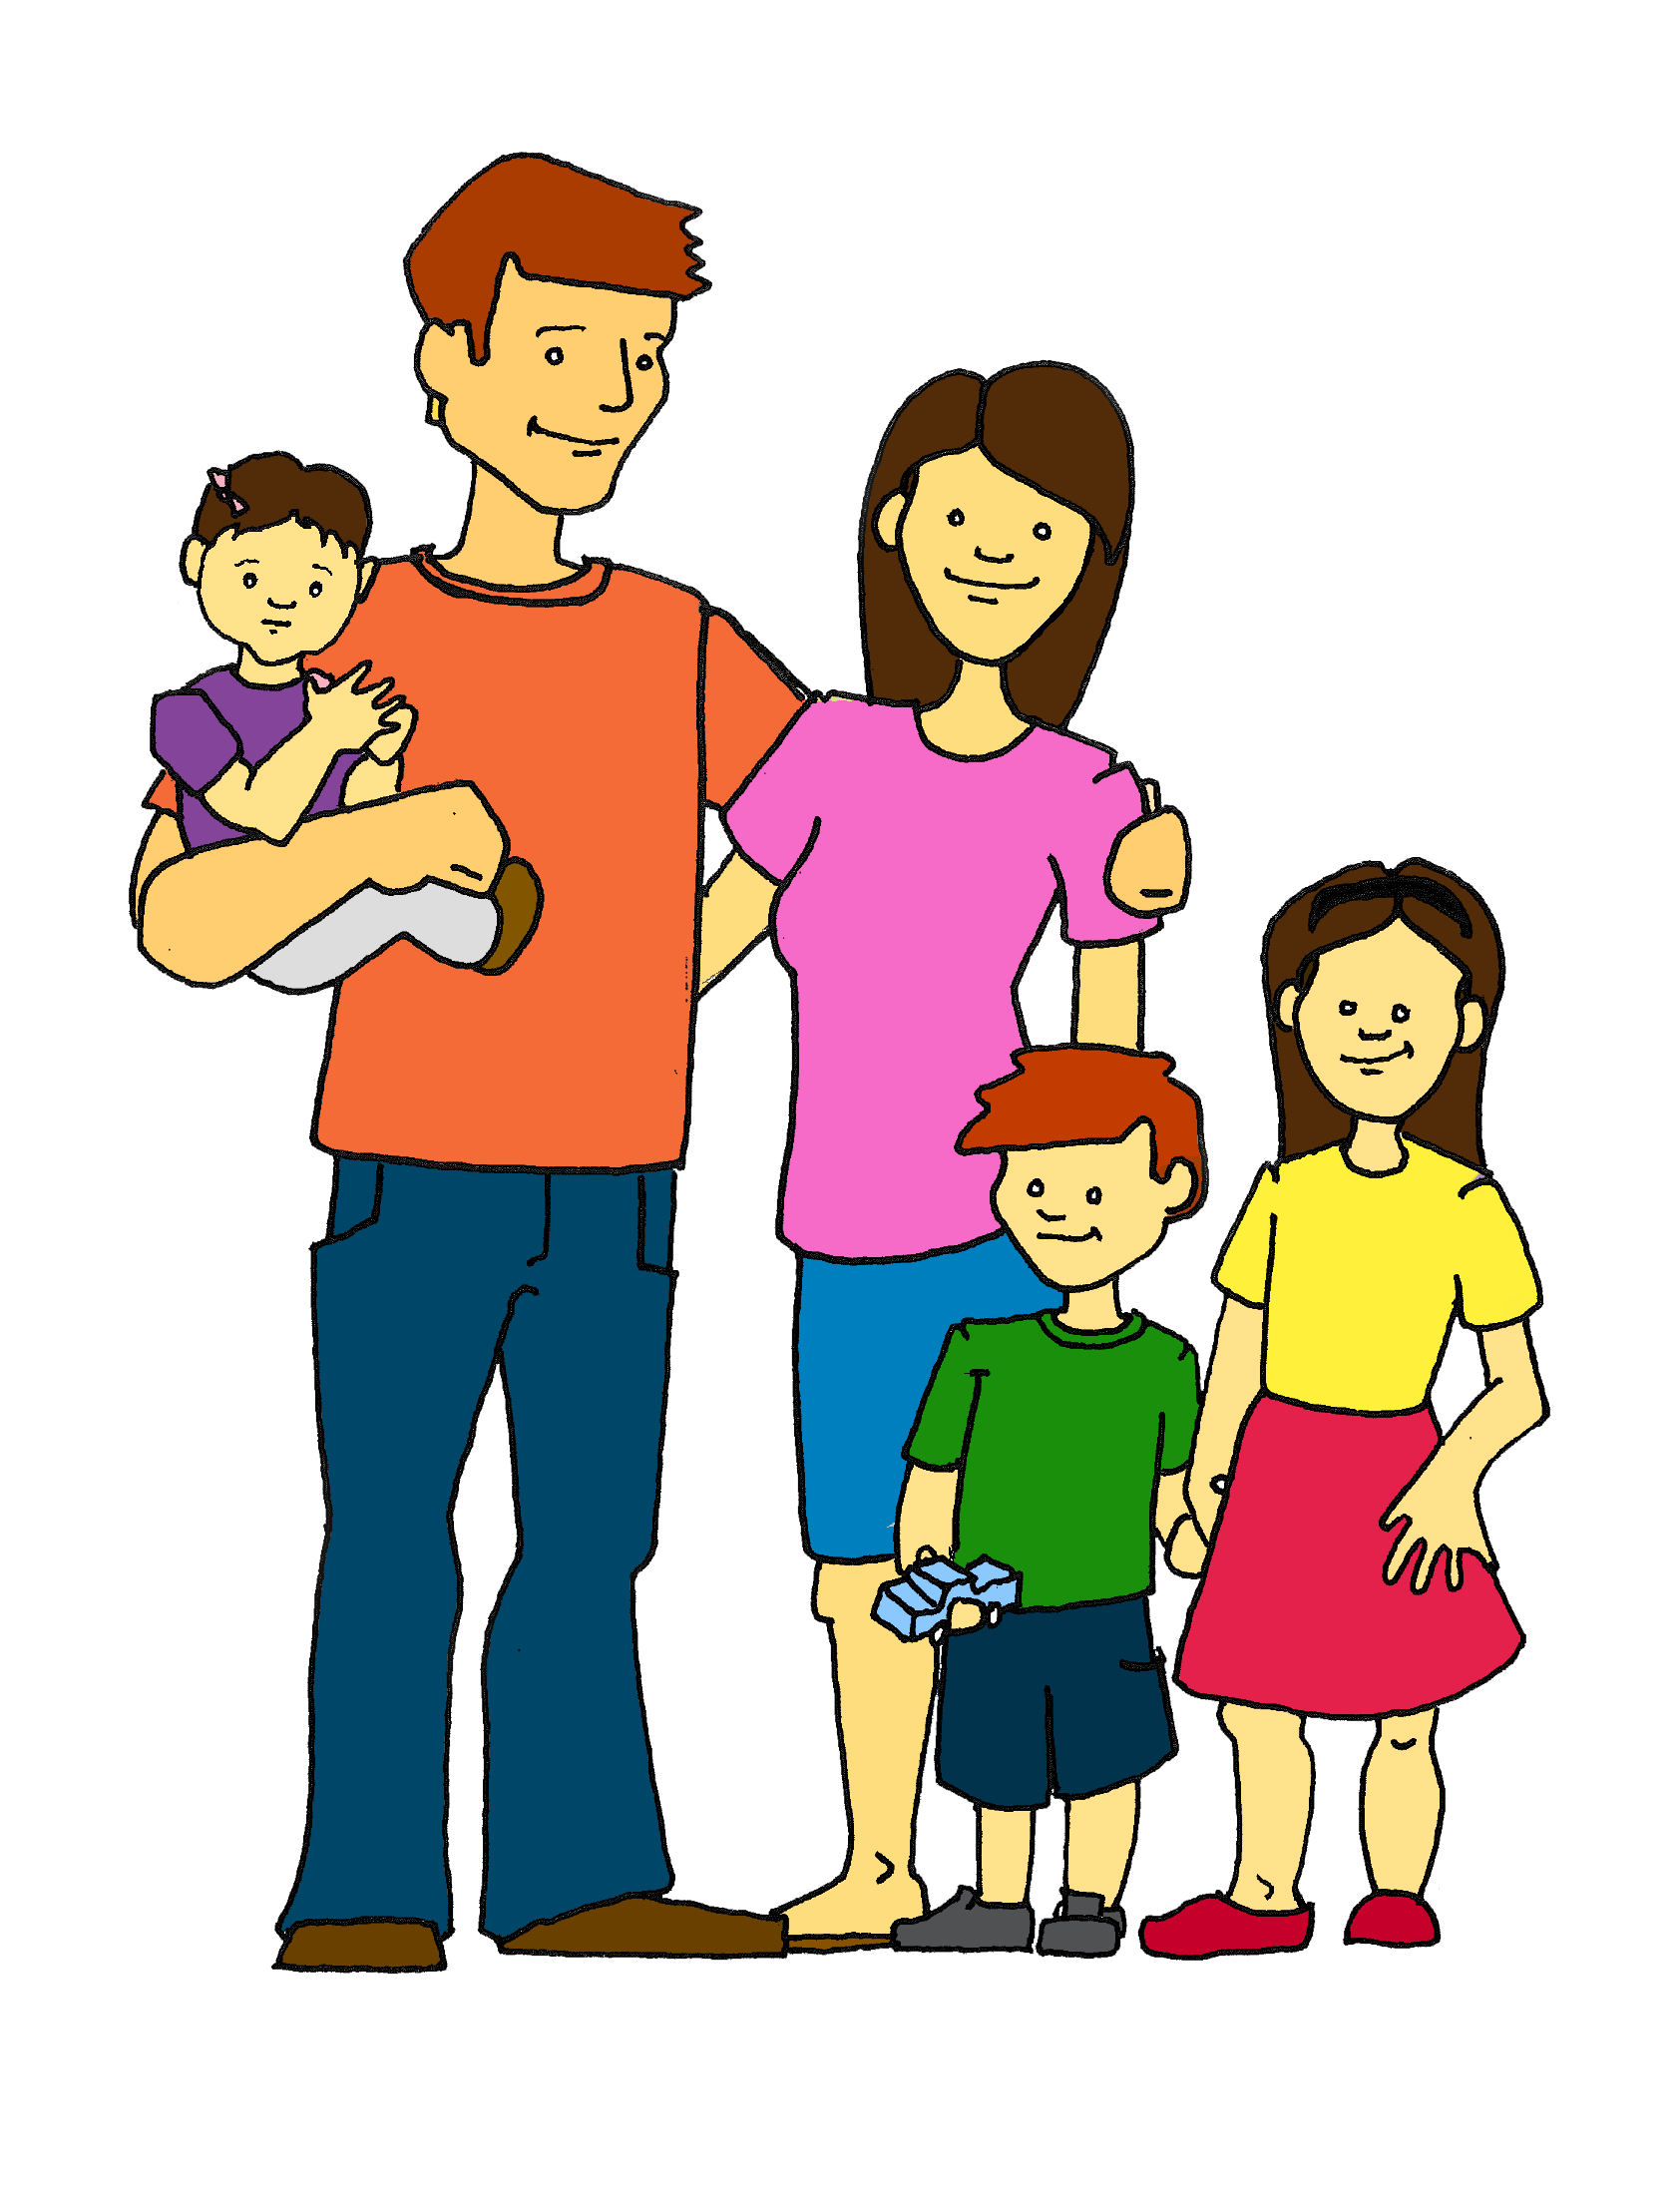 Family clipart animated. Members image group clip